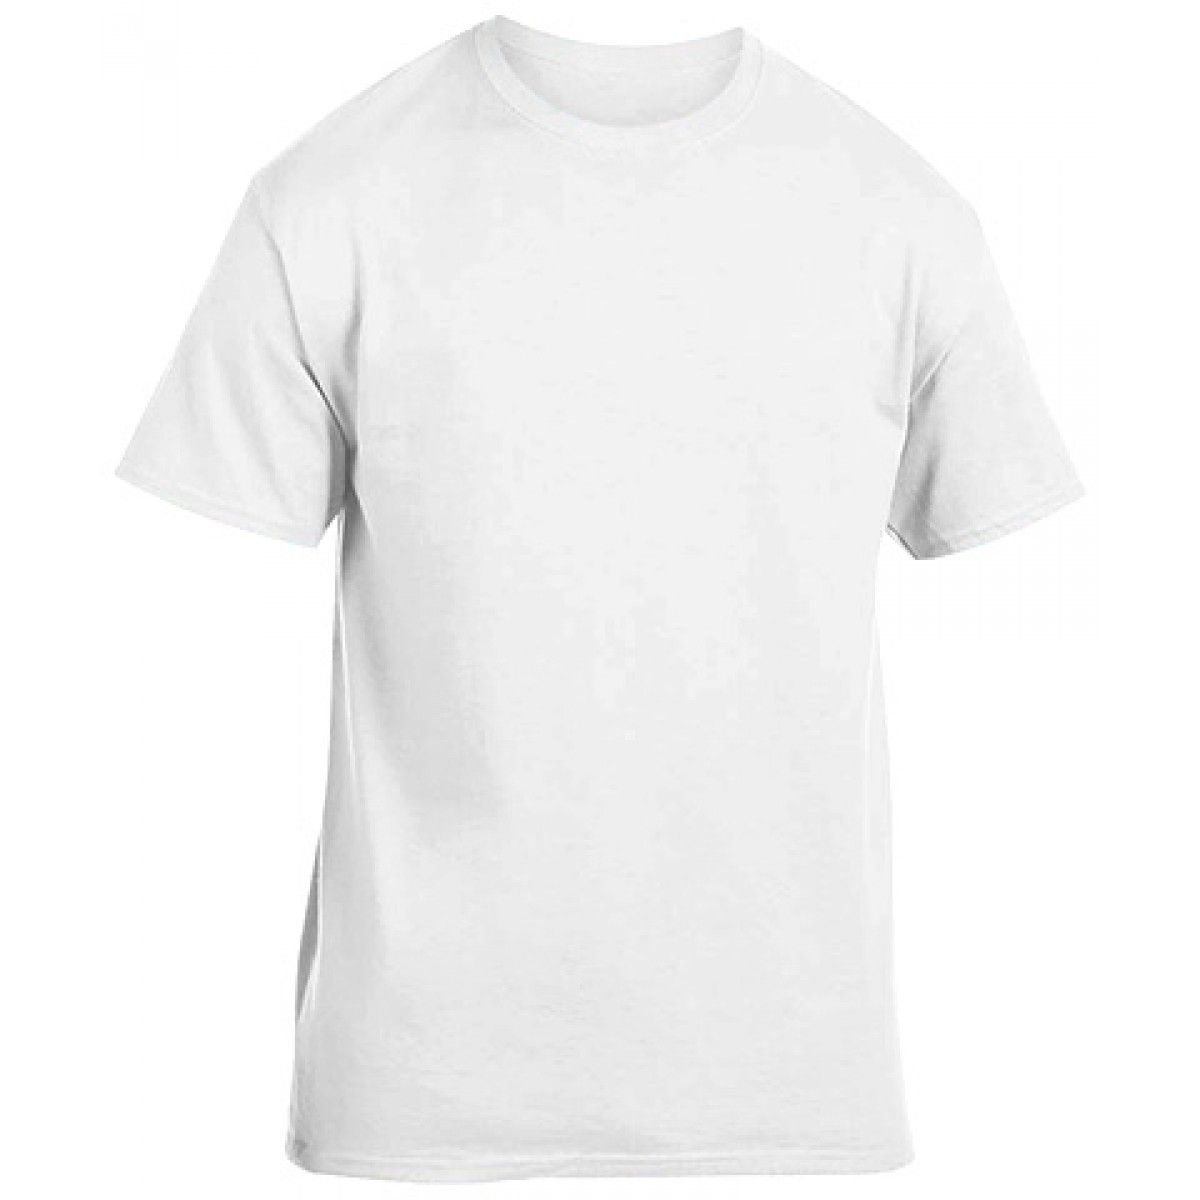 Cotton Short Sleeve T-Shirt - White with Roster on the Back